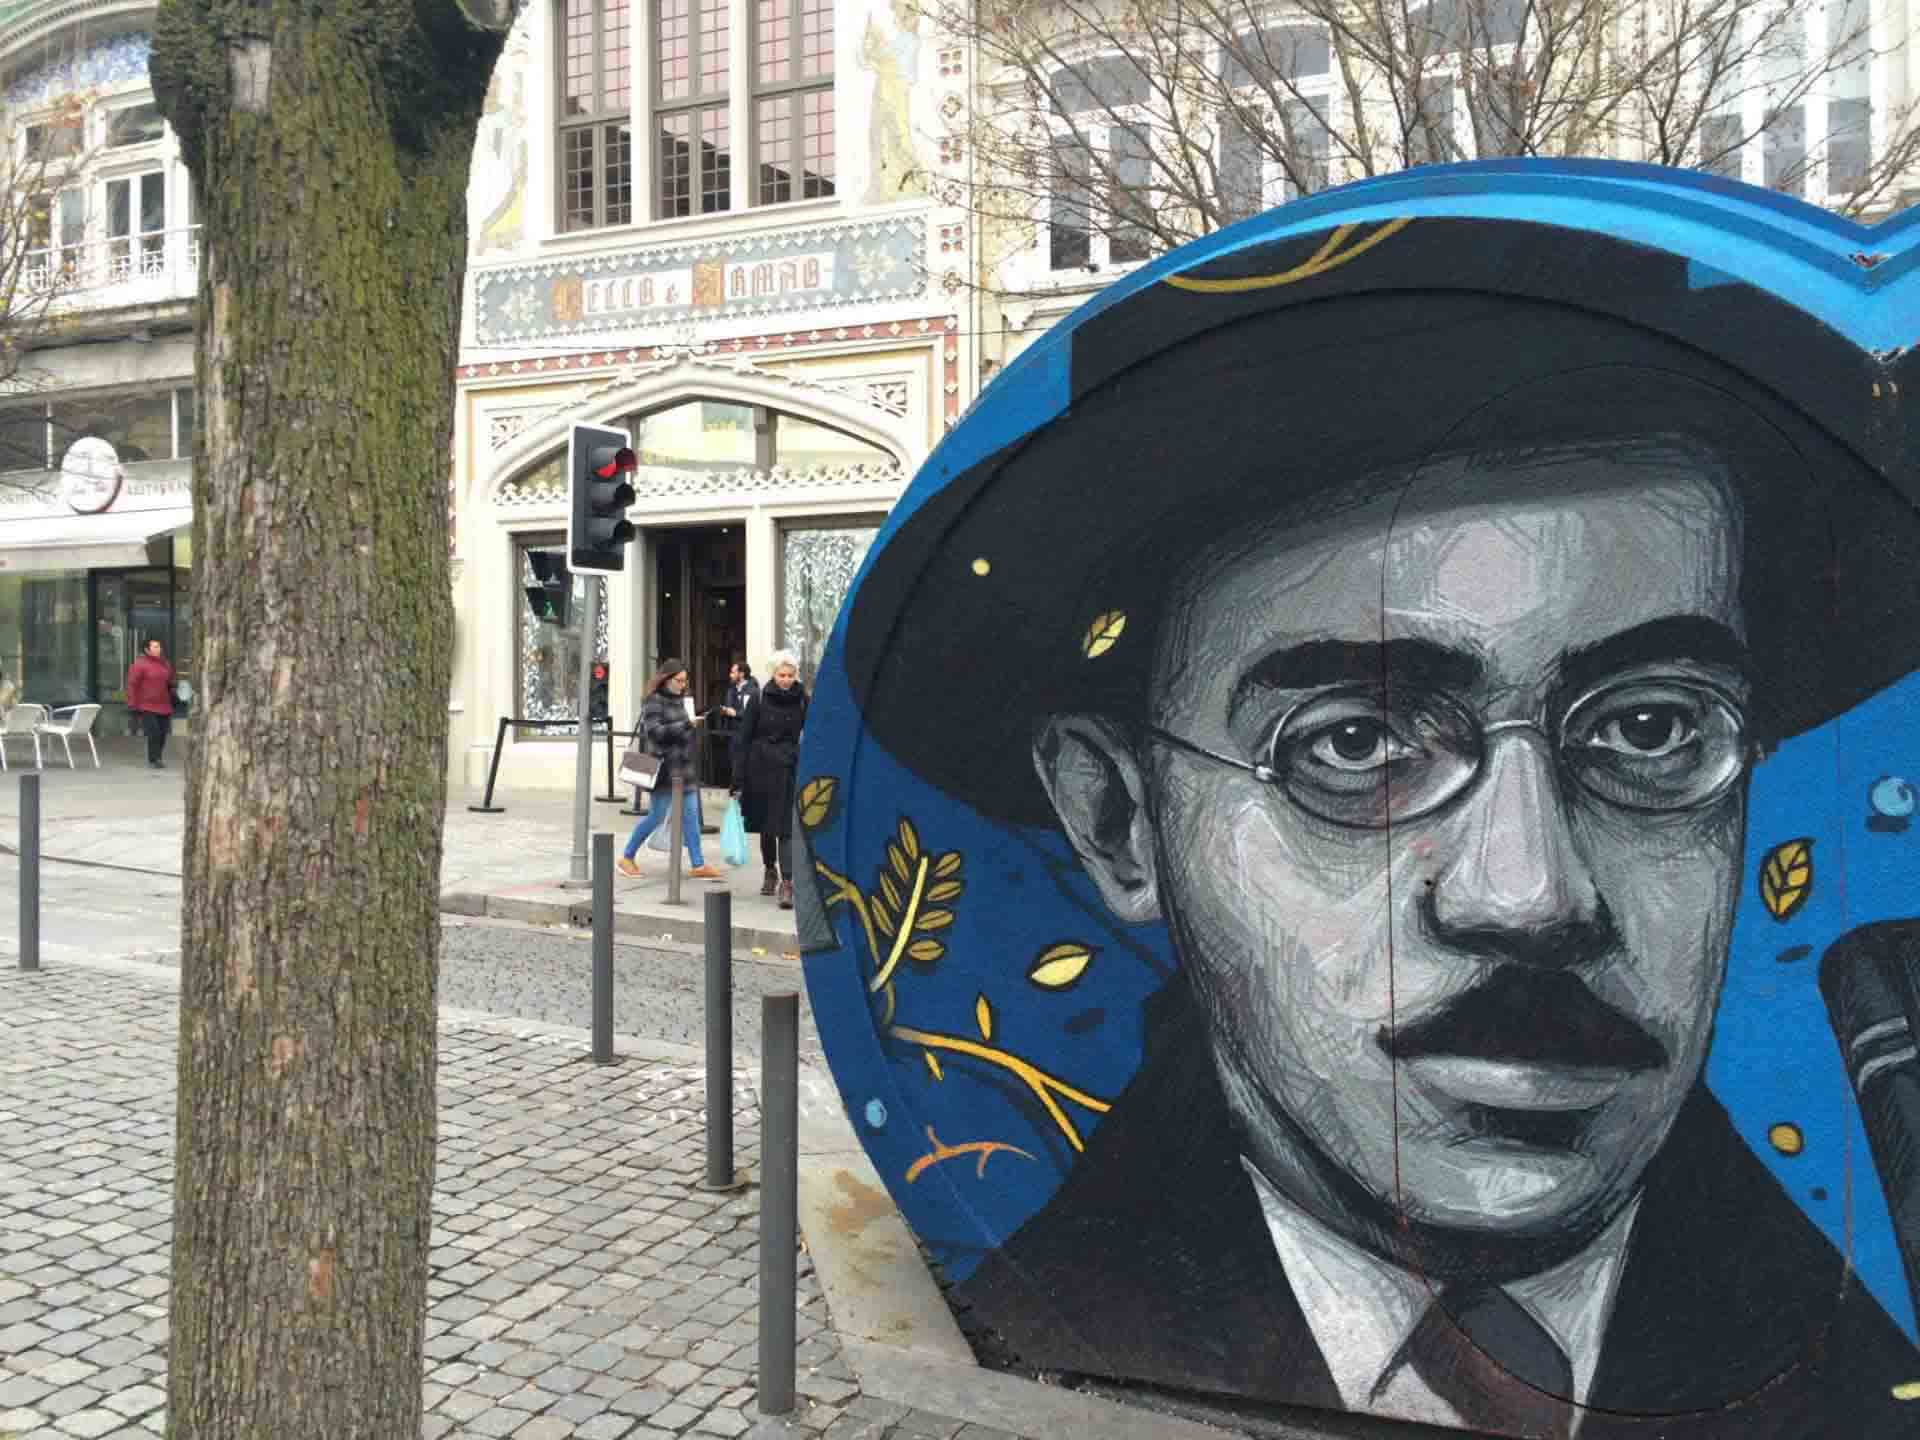 Fernando Pessoa and Harry Potter are both style icons in Porto